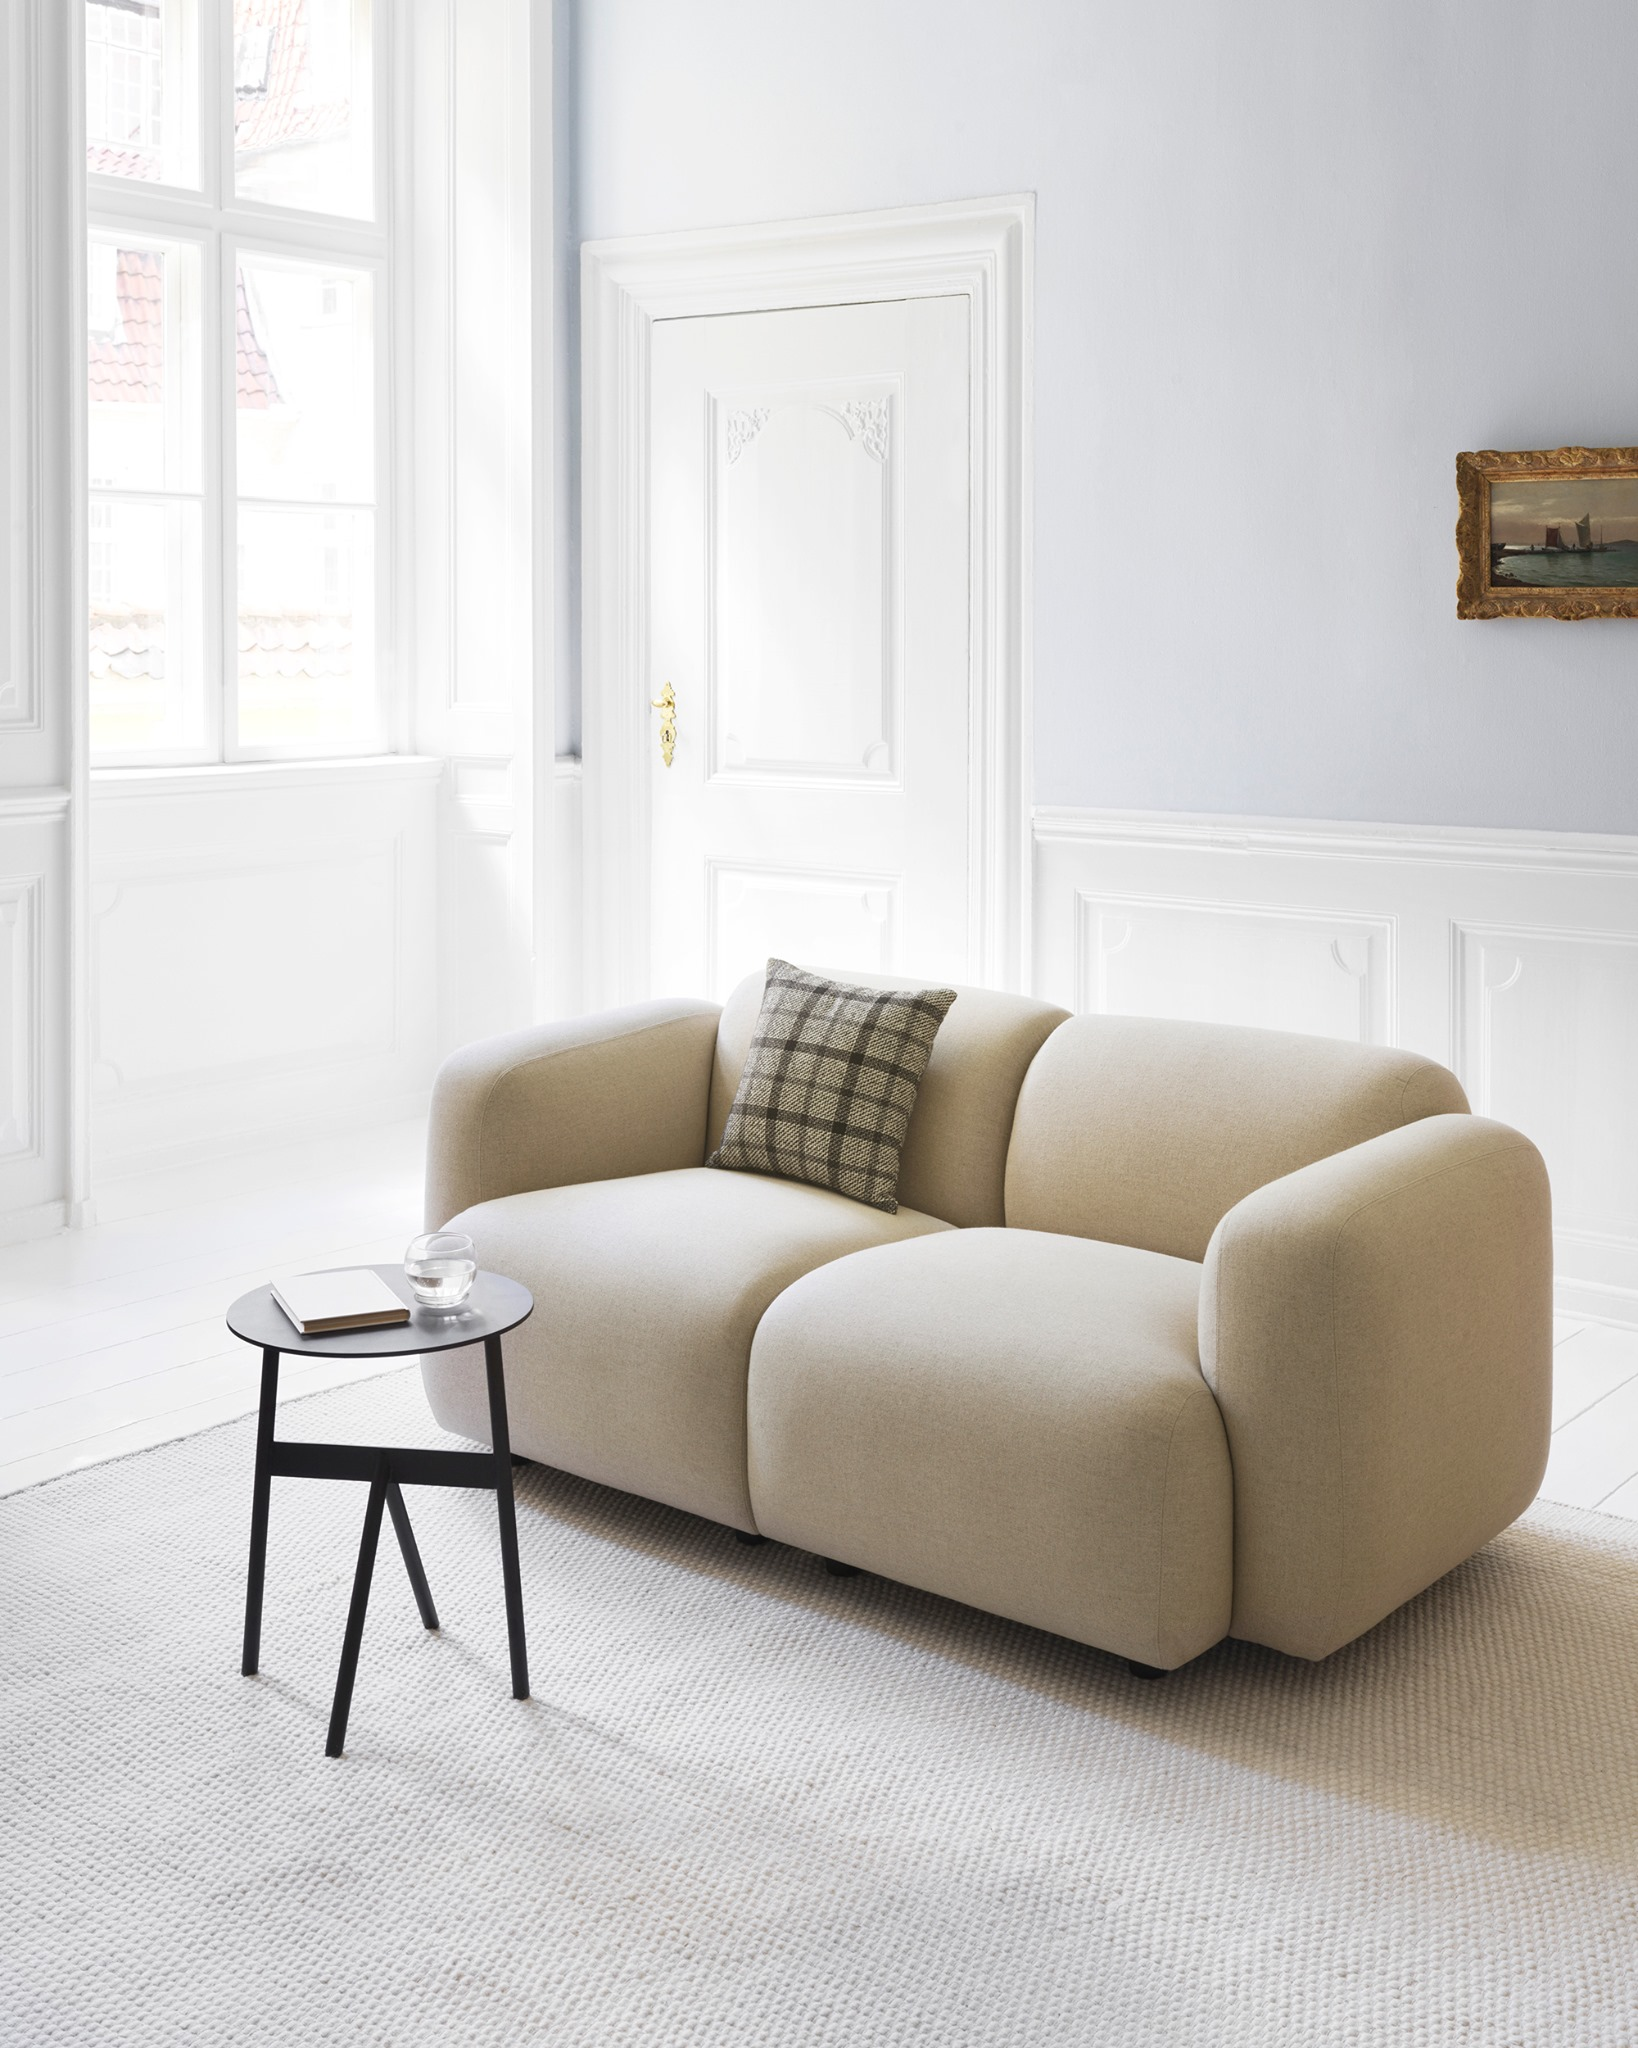 Swell Sofa Collection (2013)